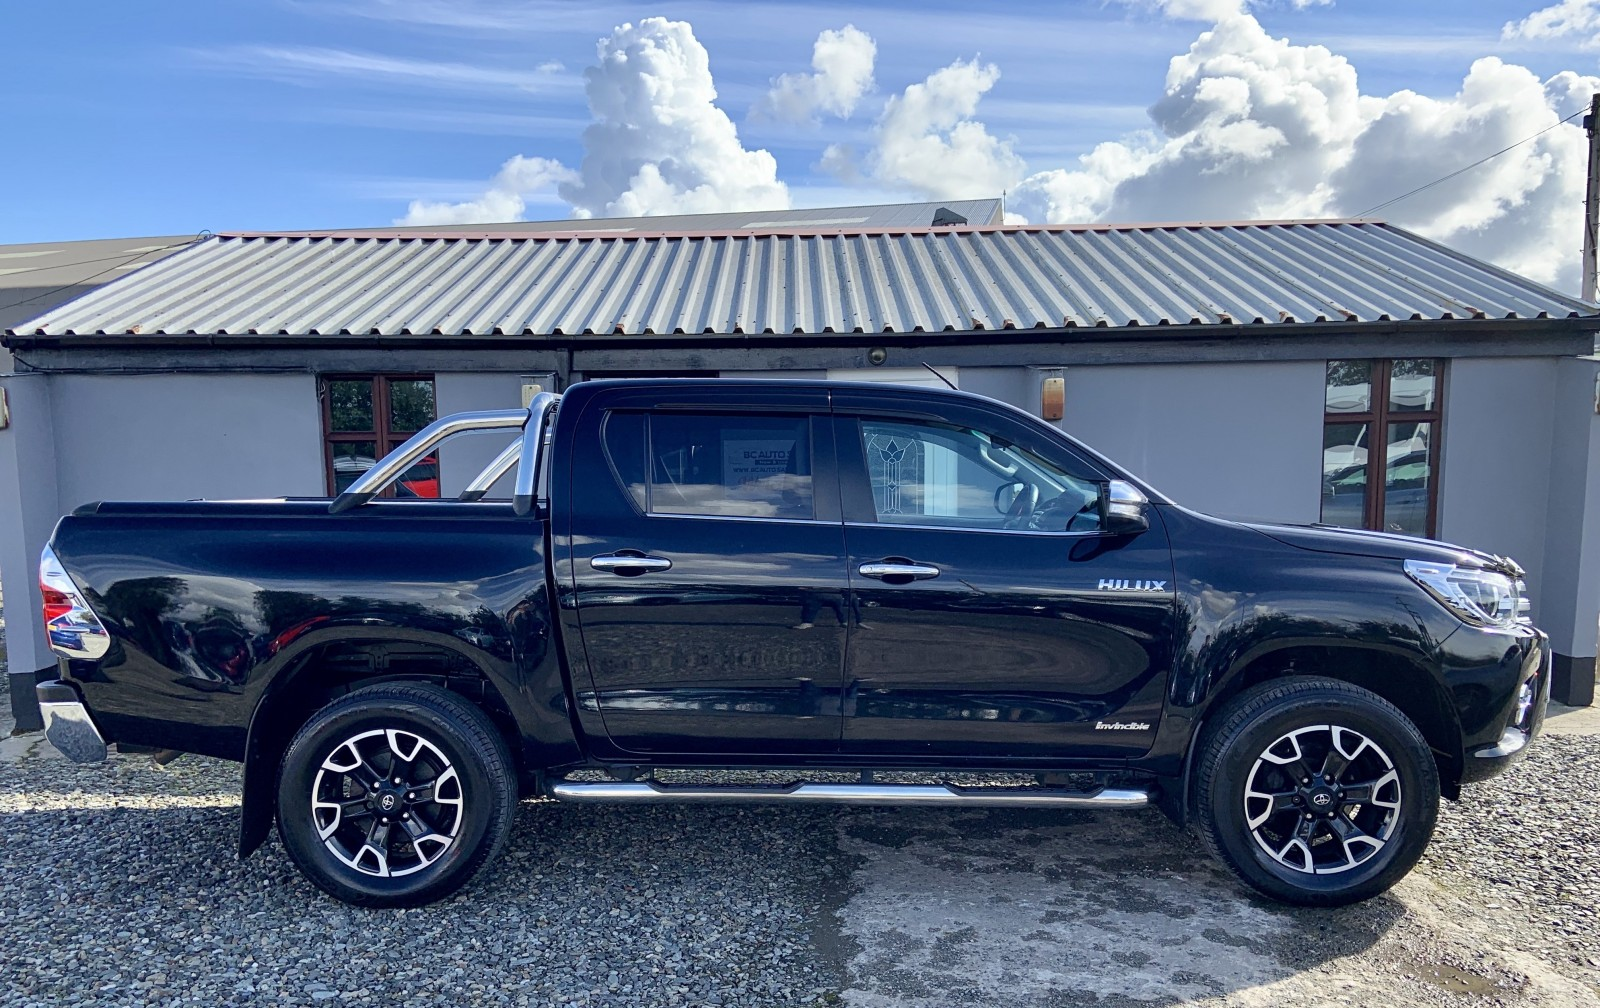 2017 Toyota Hilux INVINCIBLE X 4WD D-4D DCB Diesel Automatic – BC Autosales 17A Airfield Road, Eglinton, Londonderry BT47 3PZ, UK full